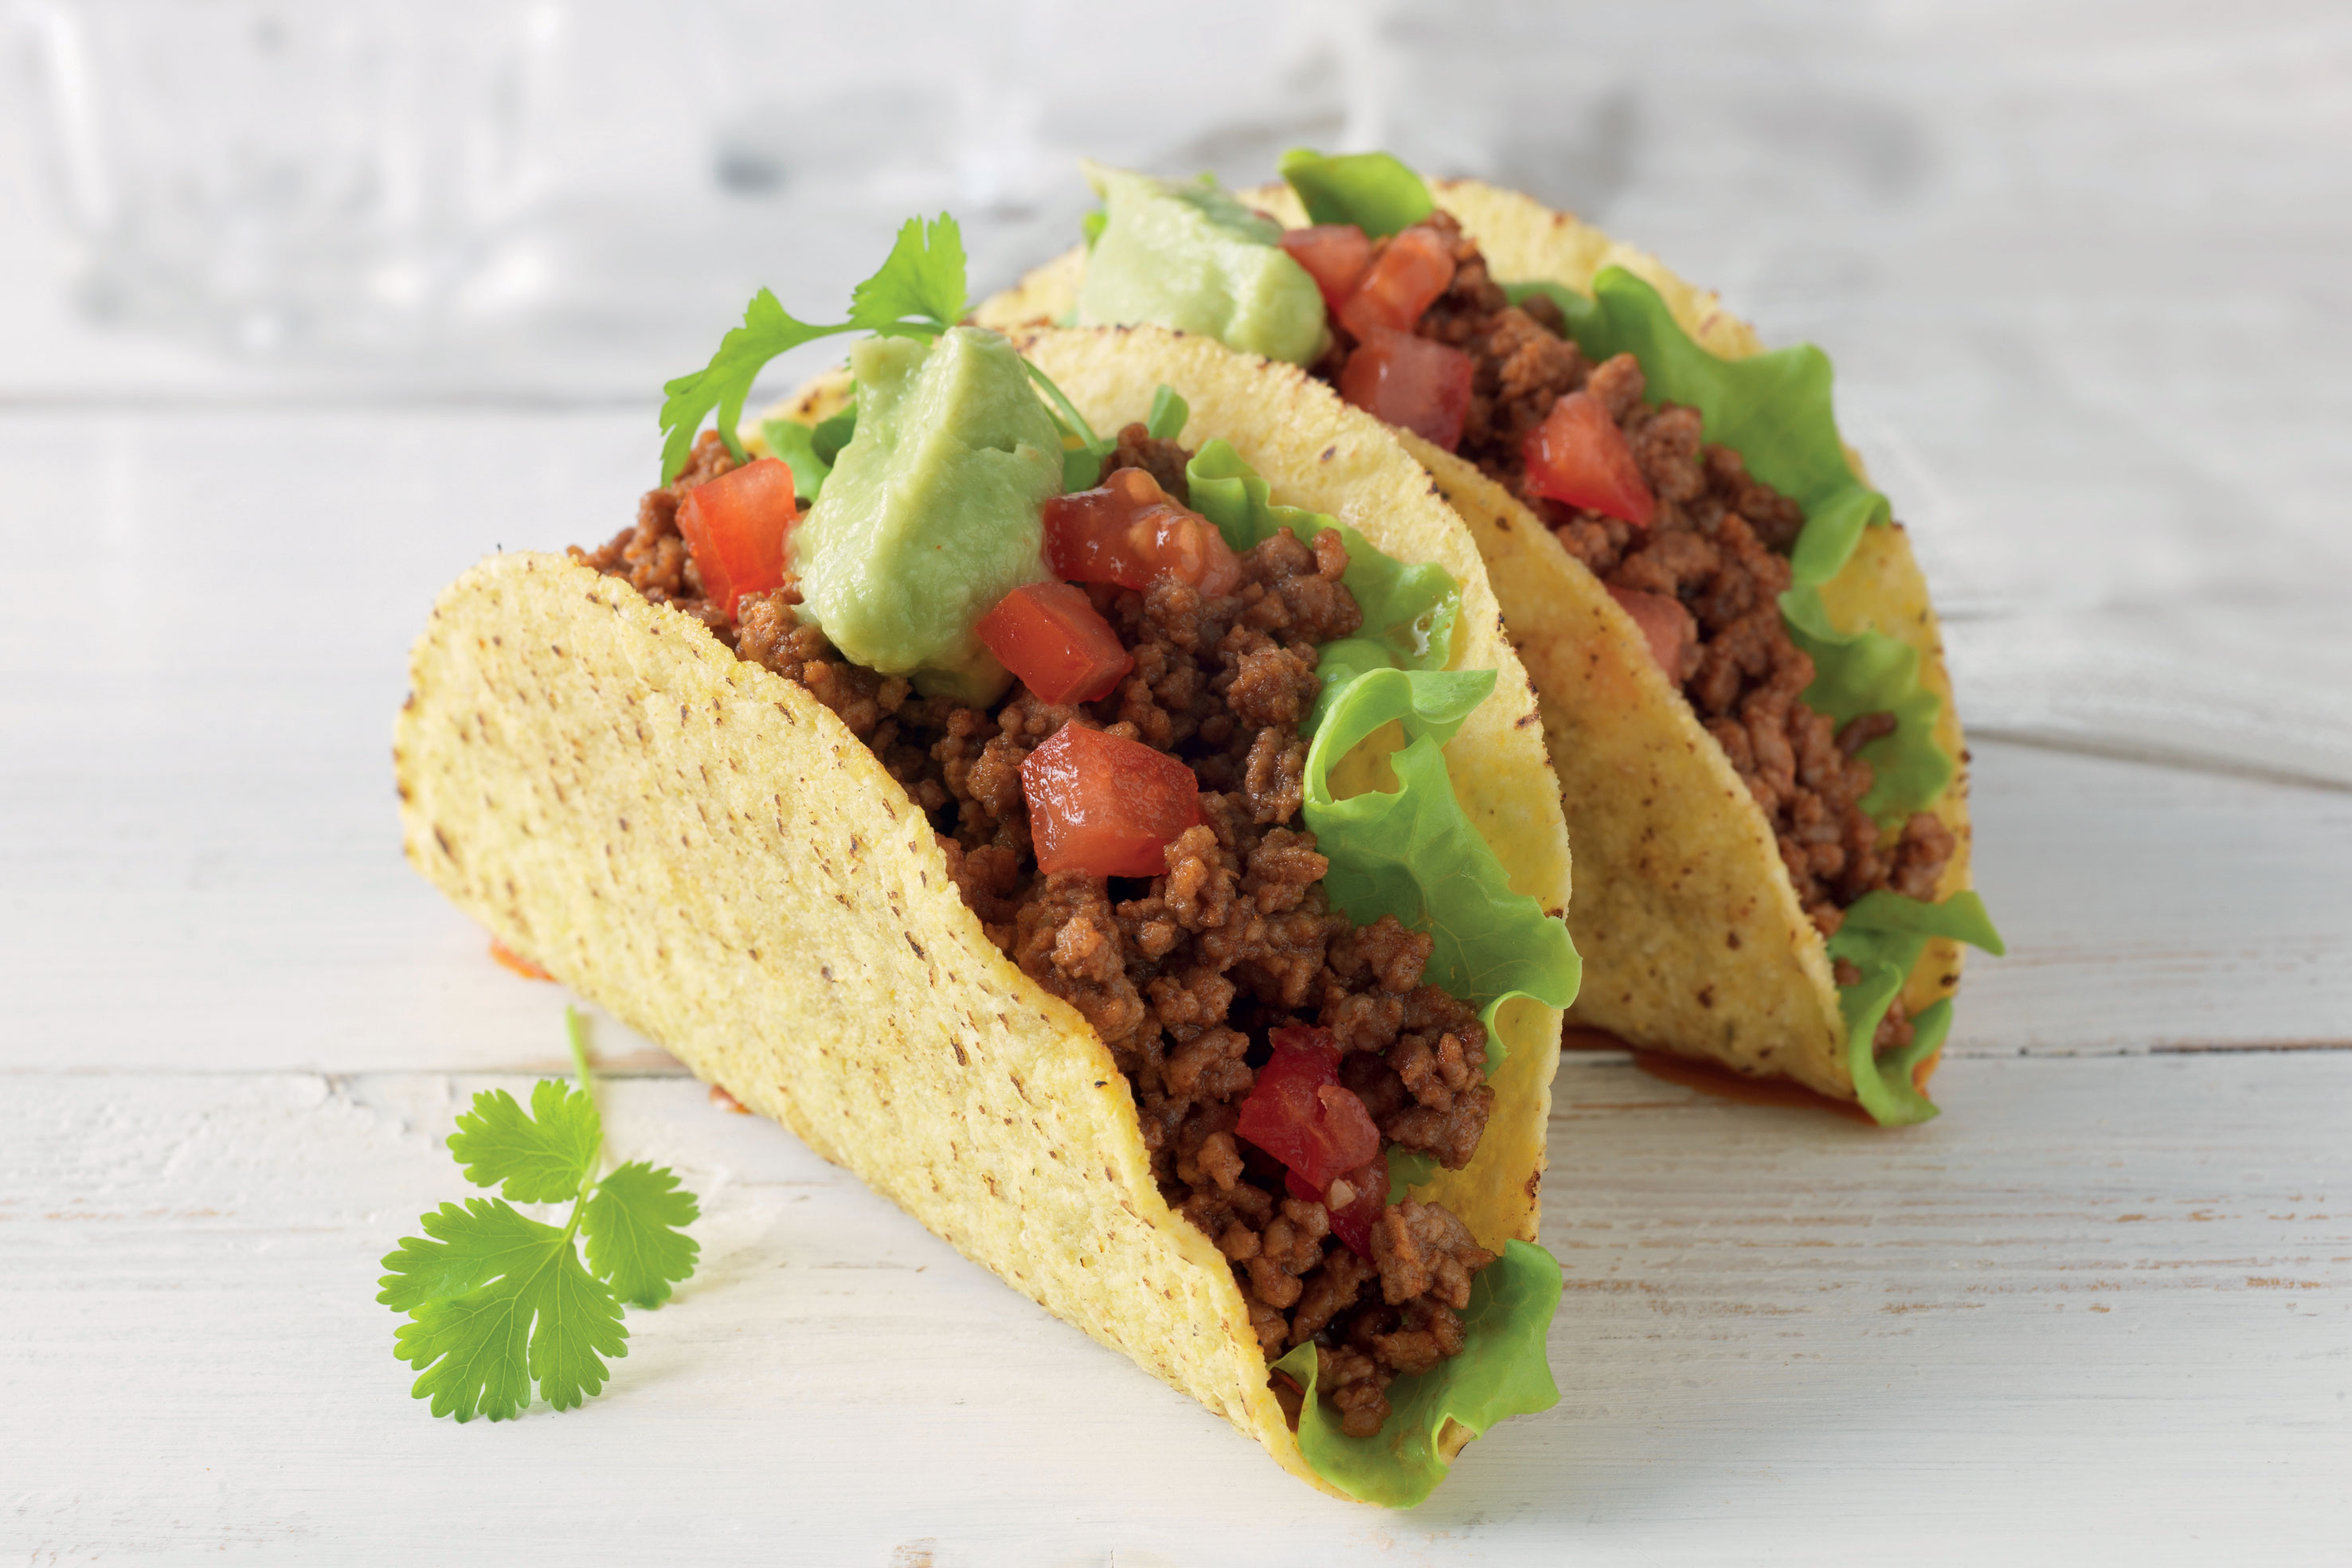 Sauce fromagere tacos recette trendy garnir avec le reste des ingrdients with sauce fromagere - Sauce fromagere tacos recette ...